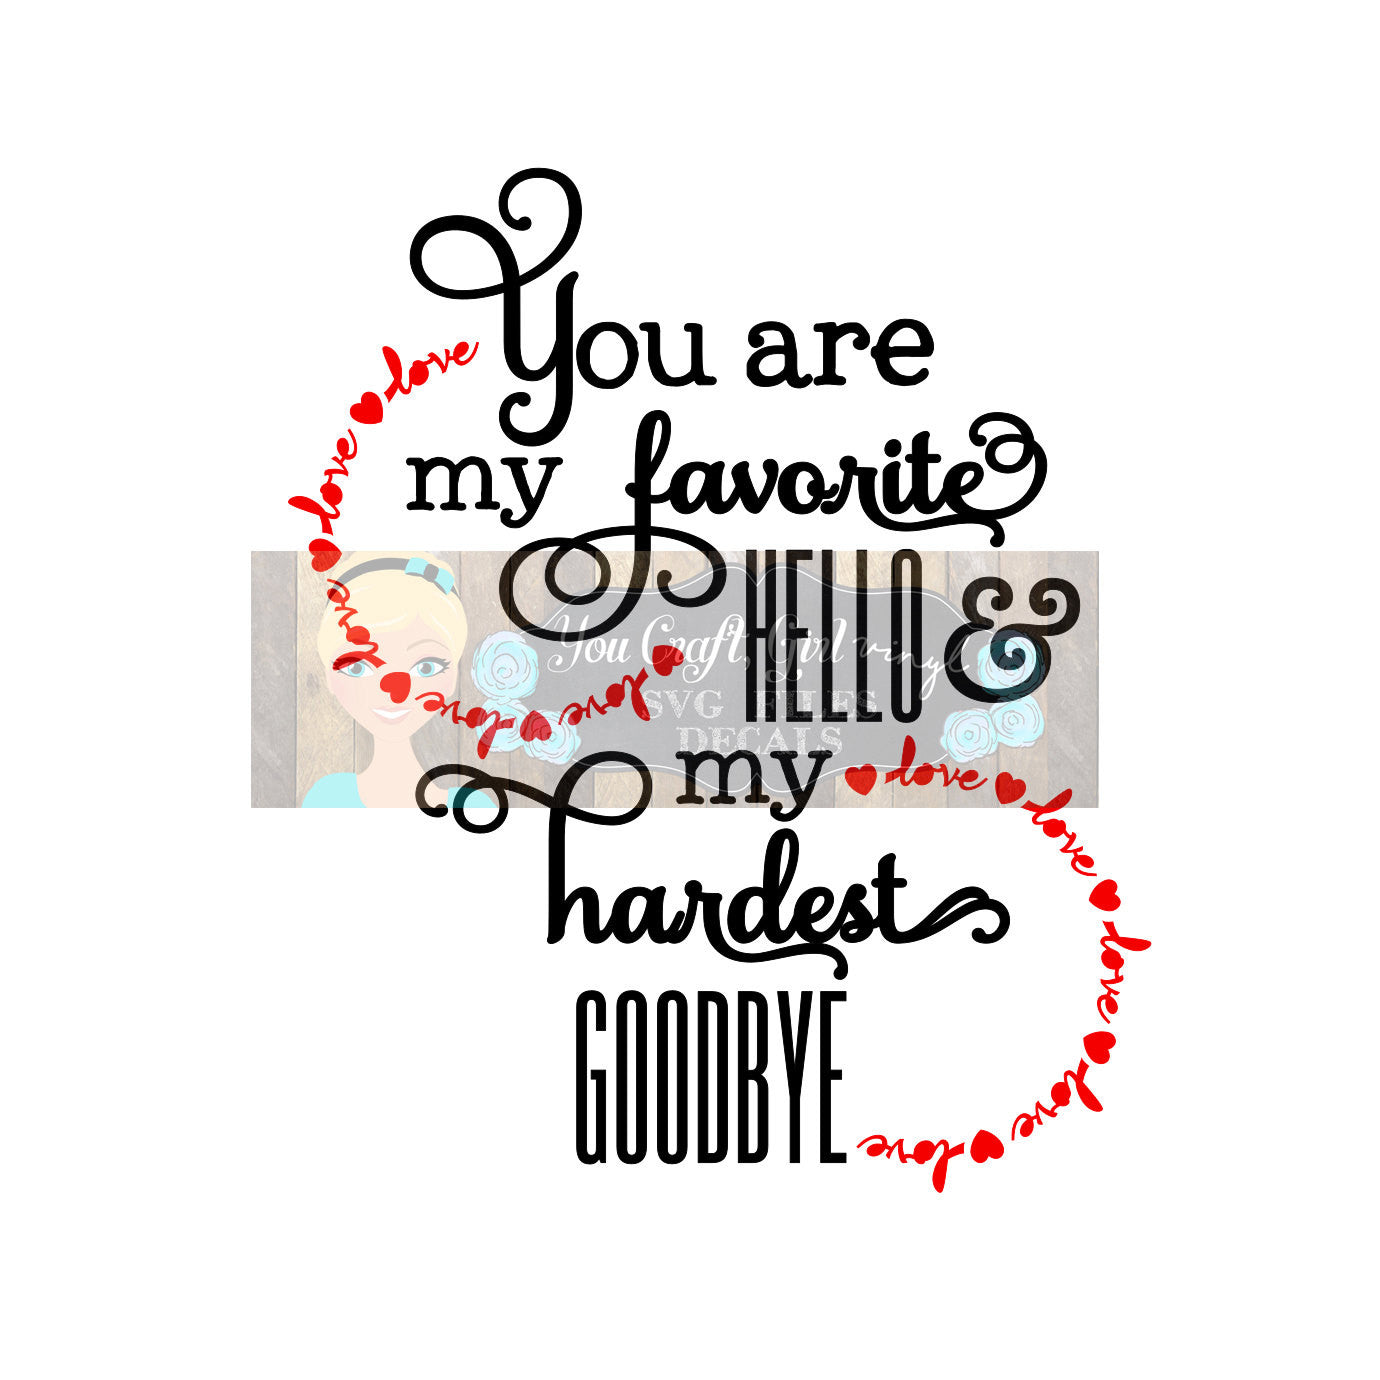 You are my Favorite Hello and my Hardest Goodbye Svg Dxf   Commercial Use SVG wedding decor   tshirt   home decor   Romance LOVE SVG Decal